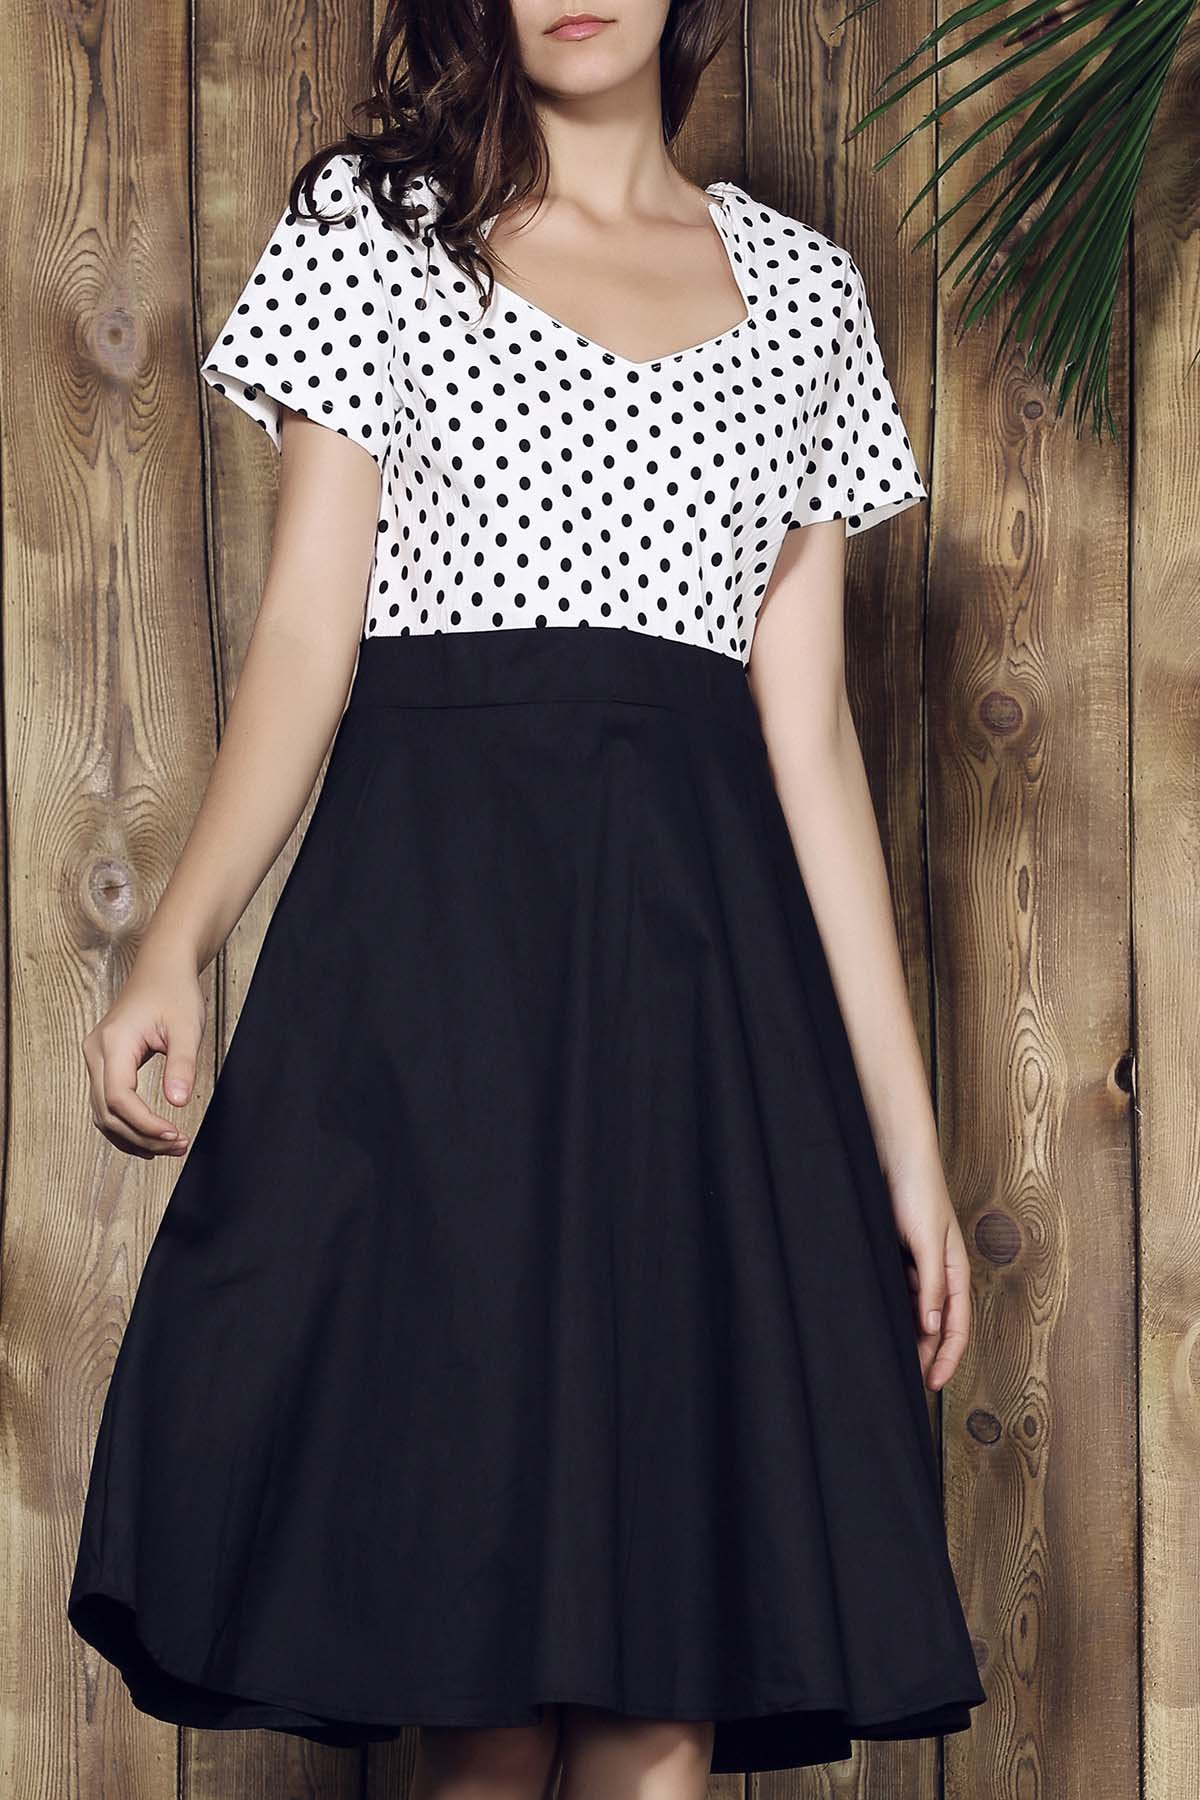 Graceful Short Sleeve Sweetheart Neck Polka Dot Women's Dress - BLACK 2XL